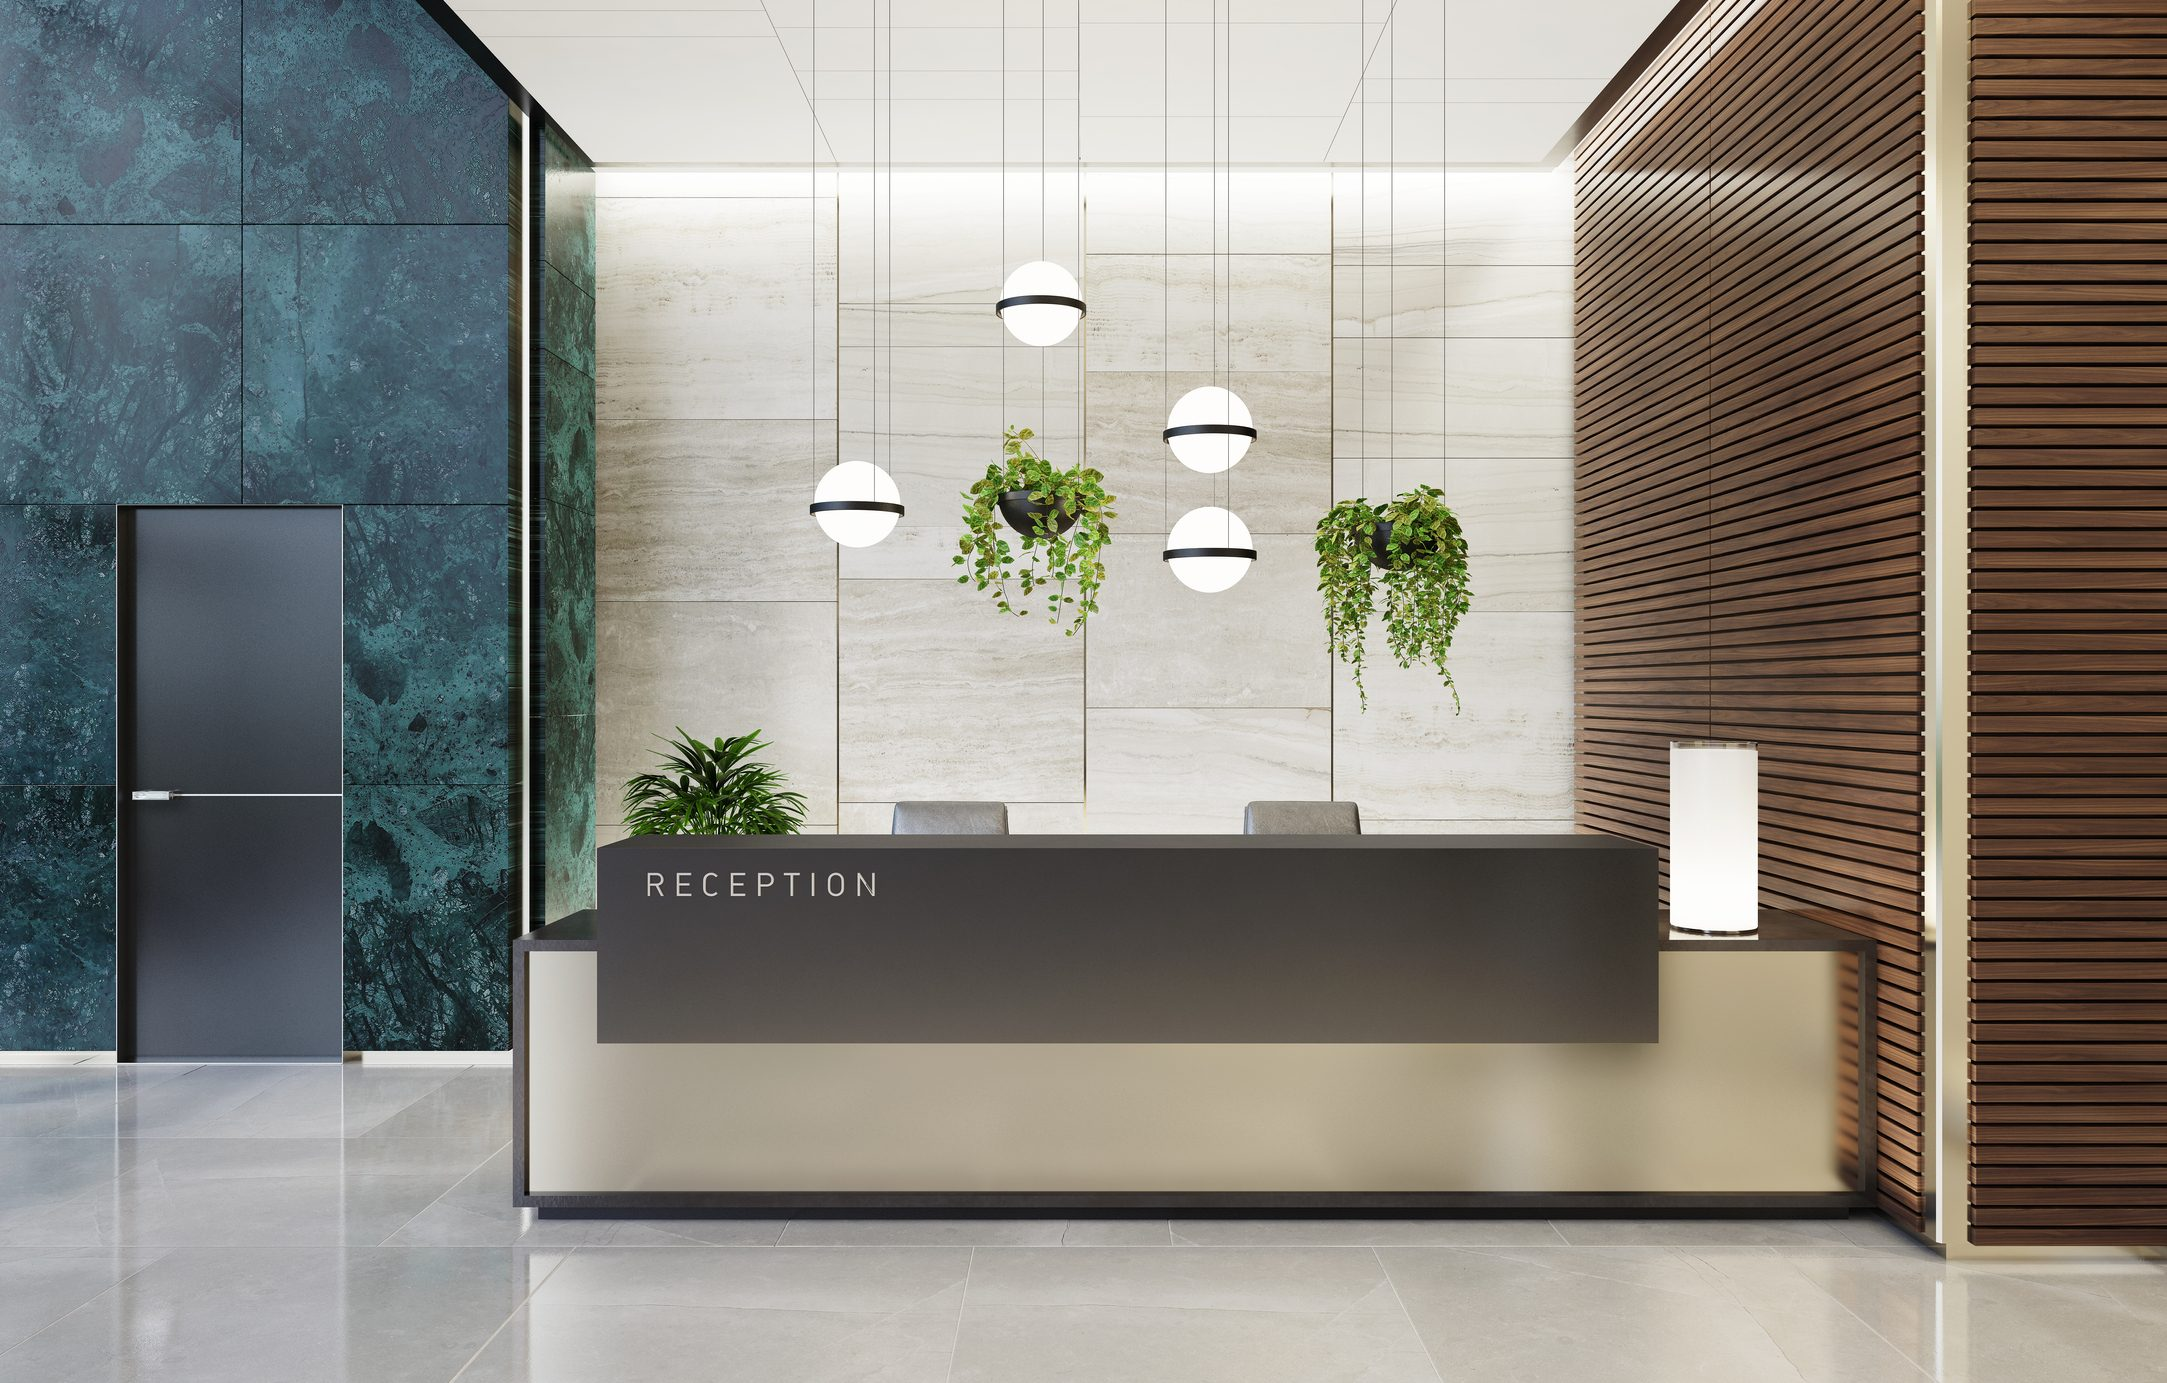 Modern Offices lobby interior area with elevators and stairs and with long reception desk